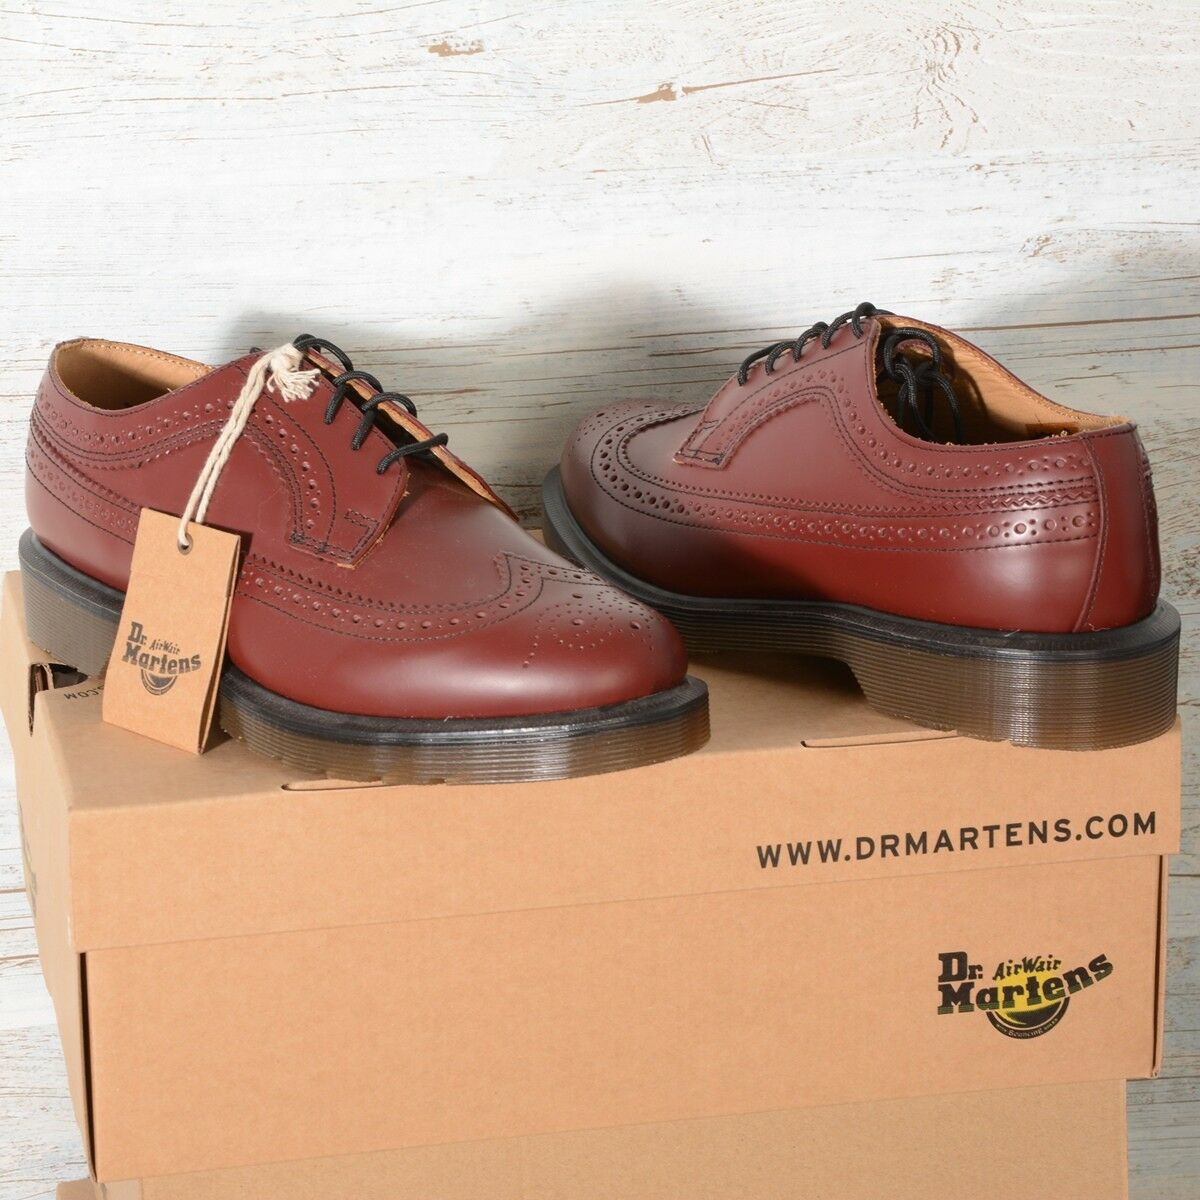 DR MARTENS 3989 Cherry 13844600 ROT Rouge 13844600 Cherry Smooth a31161